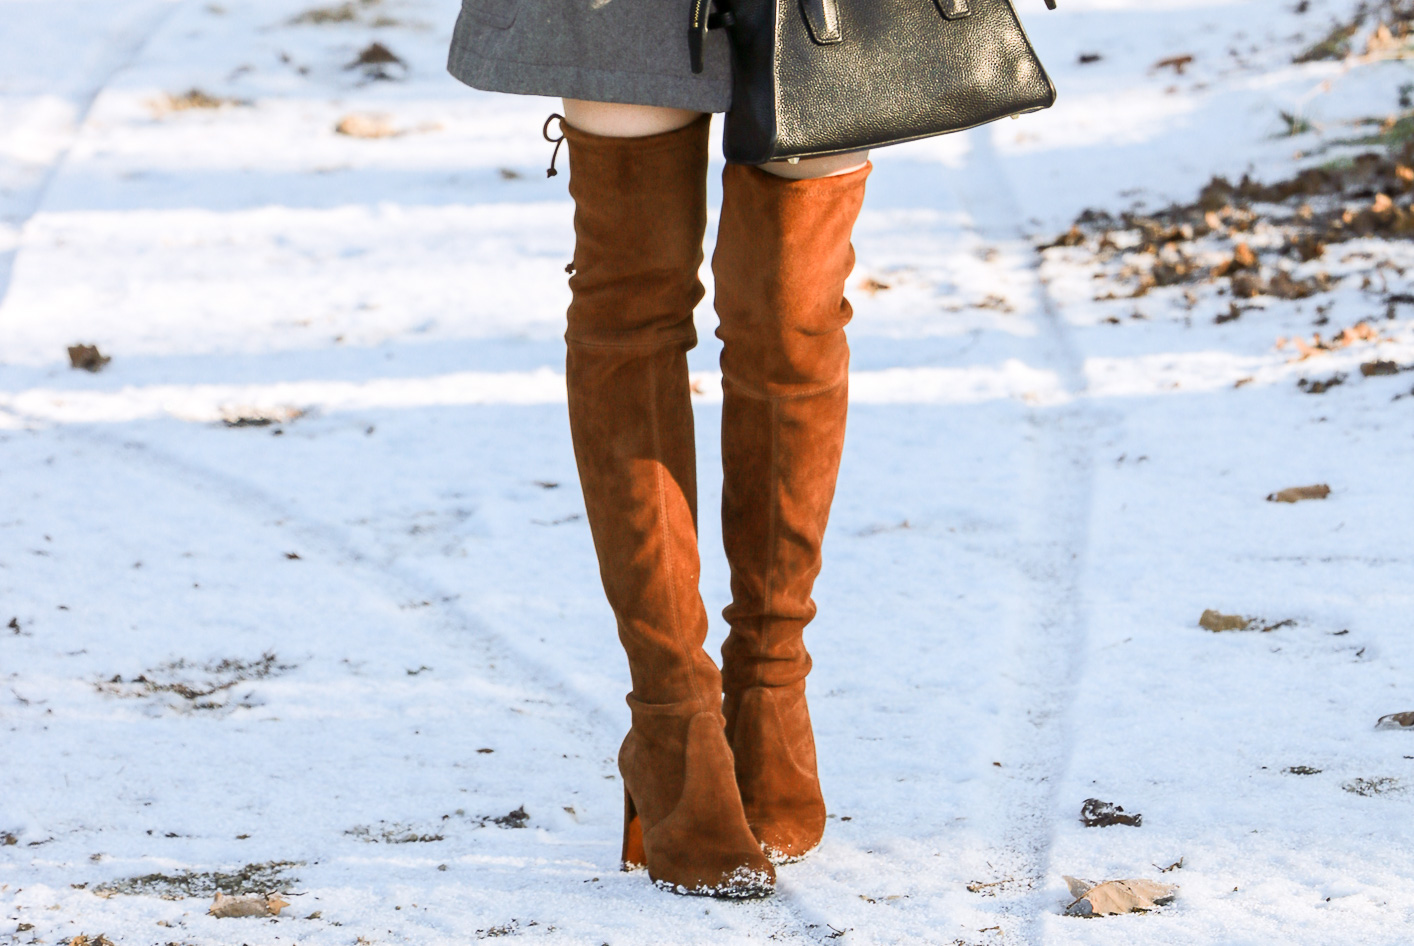 Fashion blogger Veronika Lipar of Brunette From Wall Street sharing 5 Ways to Style and Wear the Over the Knee Boots this winter